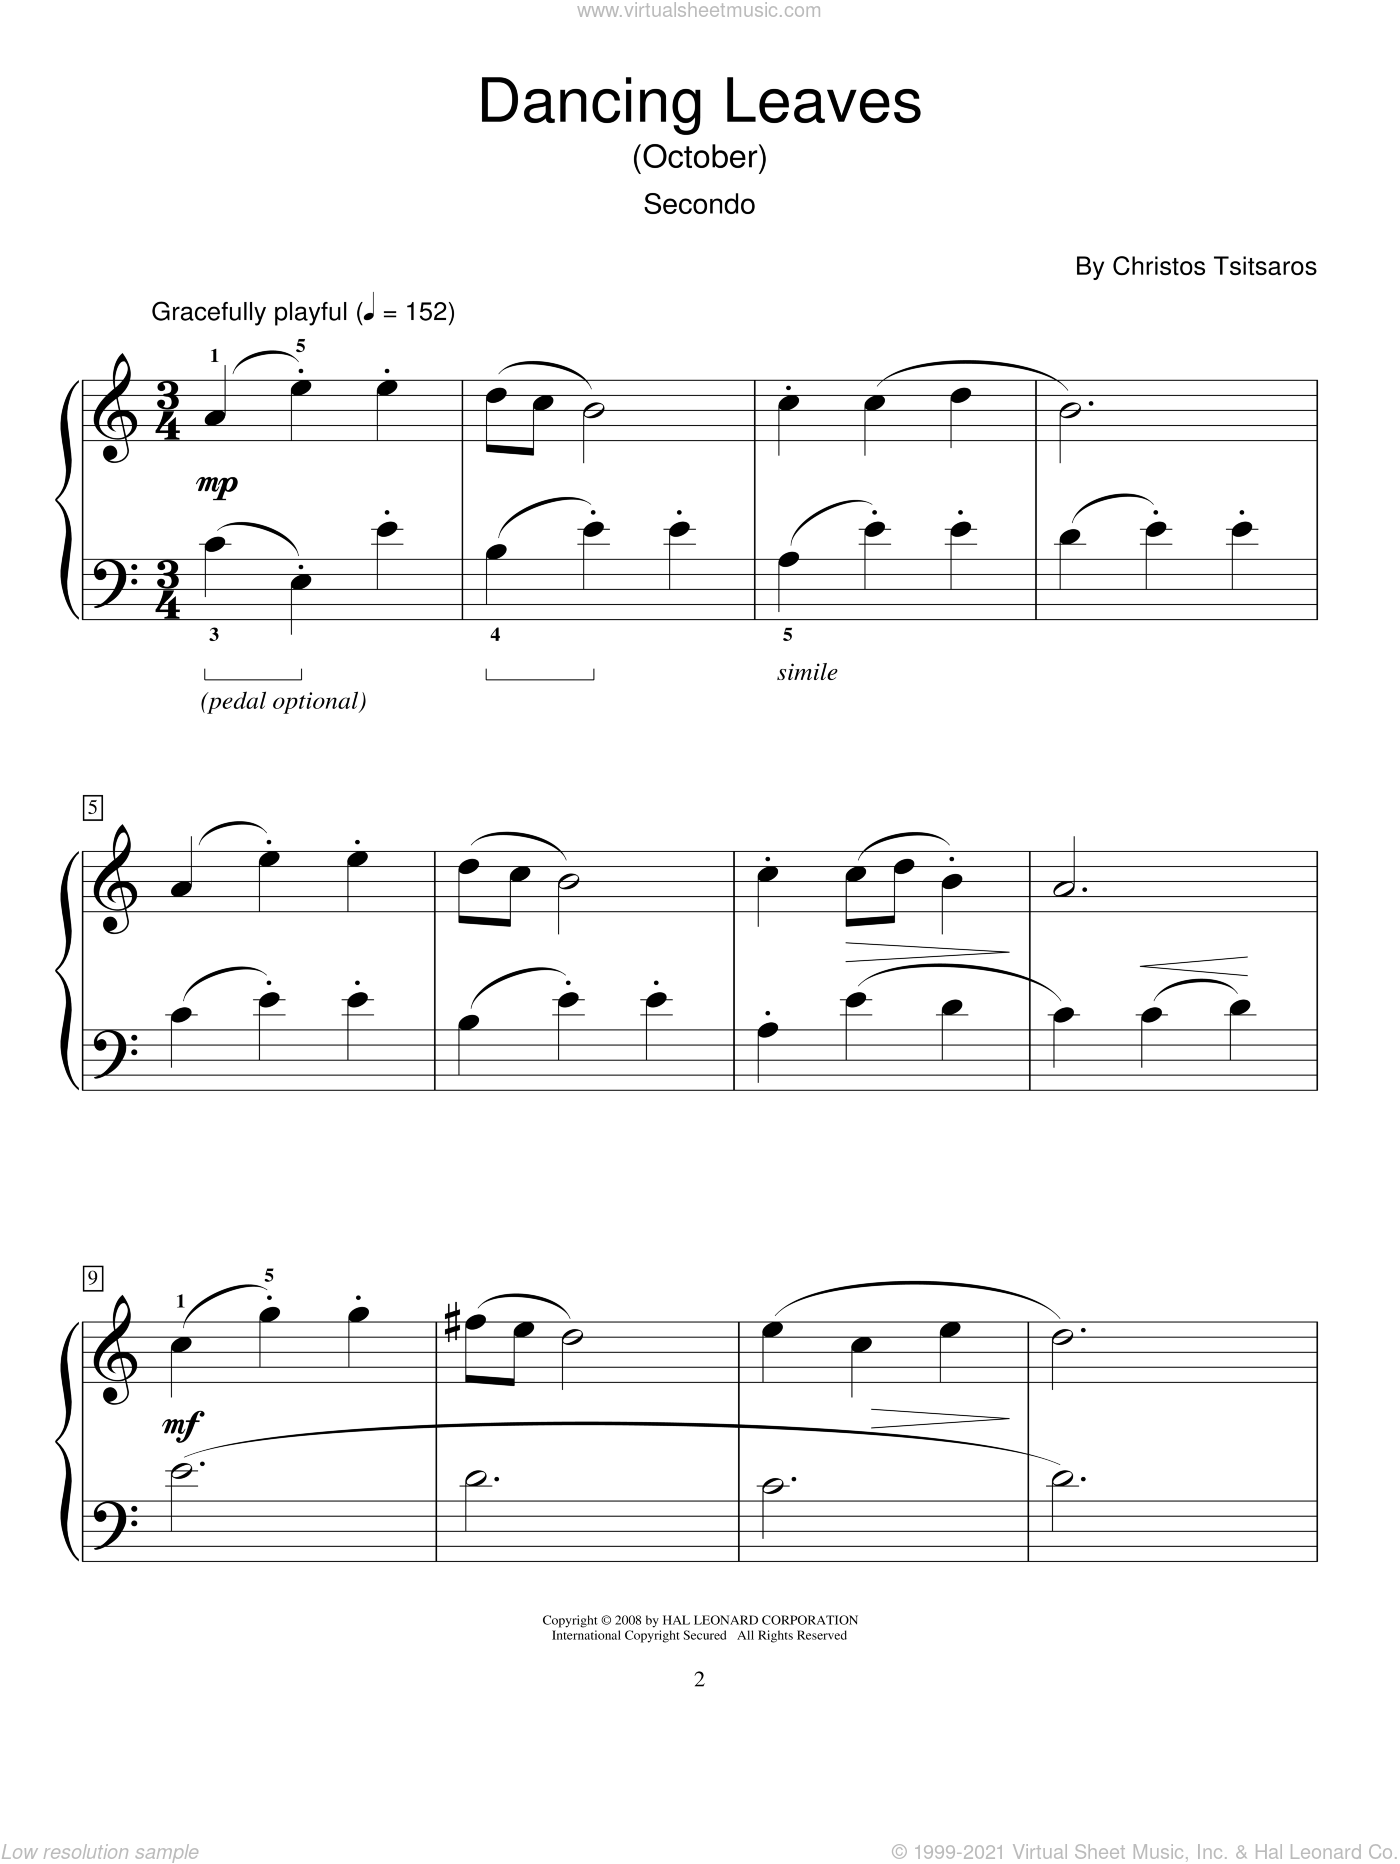 Dancing Leaves (October) sheet music for piano four hands (duets) by Christos Tsitsaros